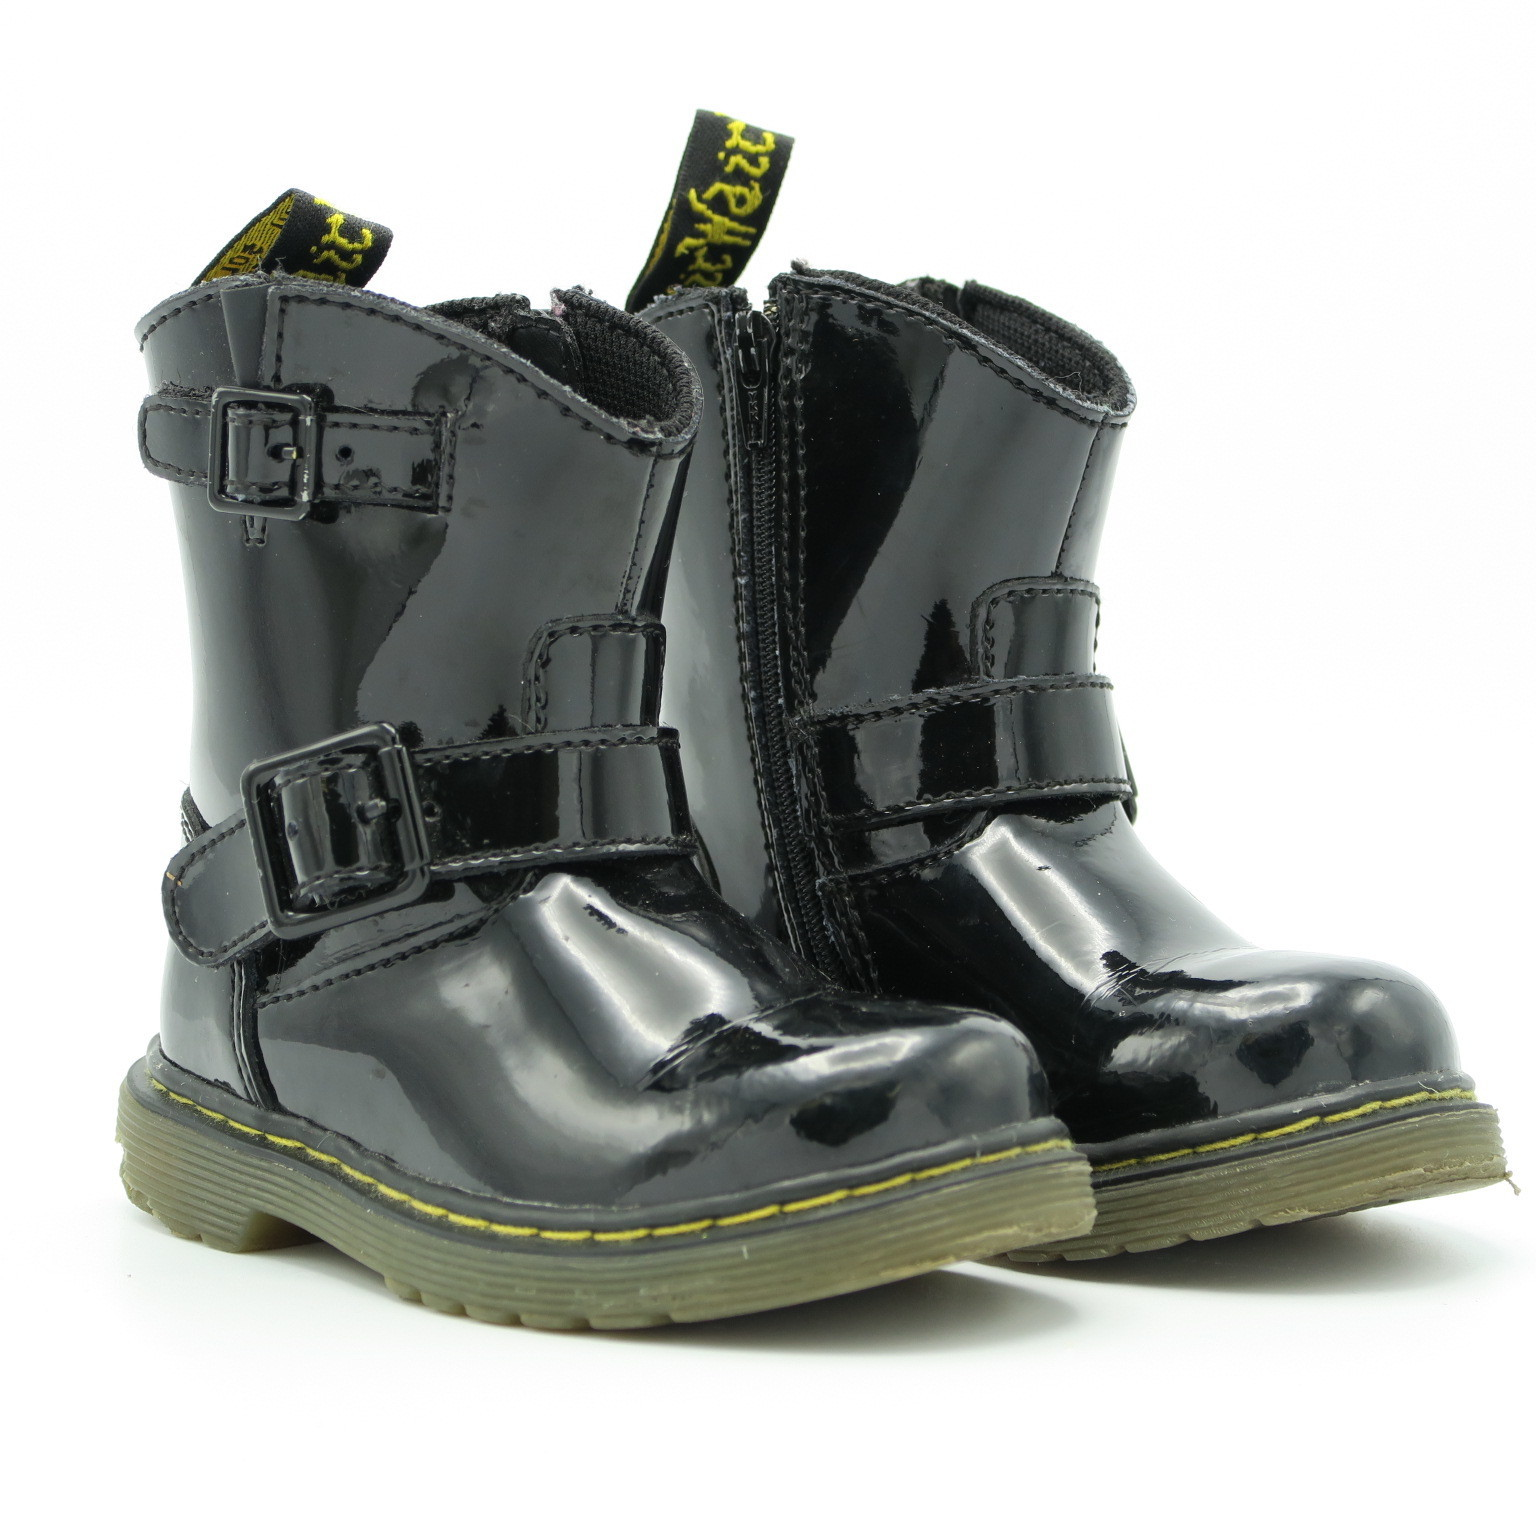 c0356337373 Dr. Martens for kids are available for trade by the Swoondle Society